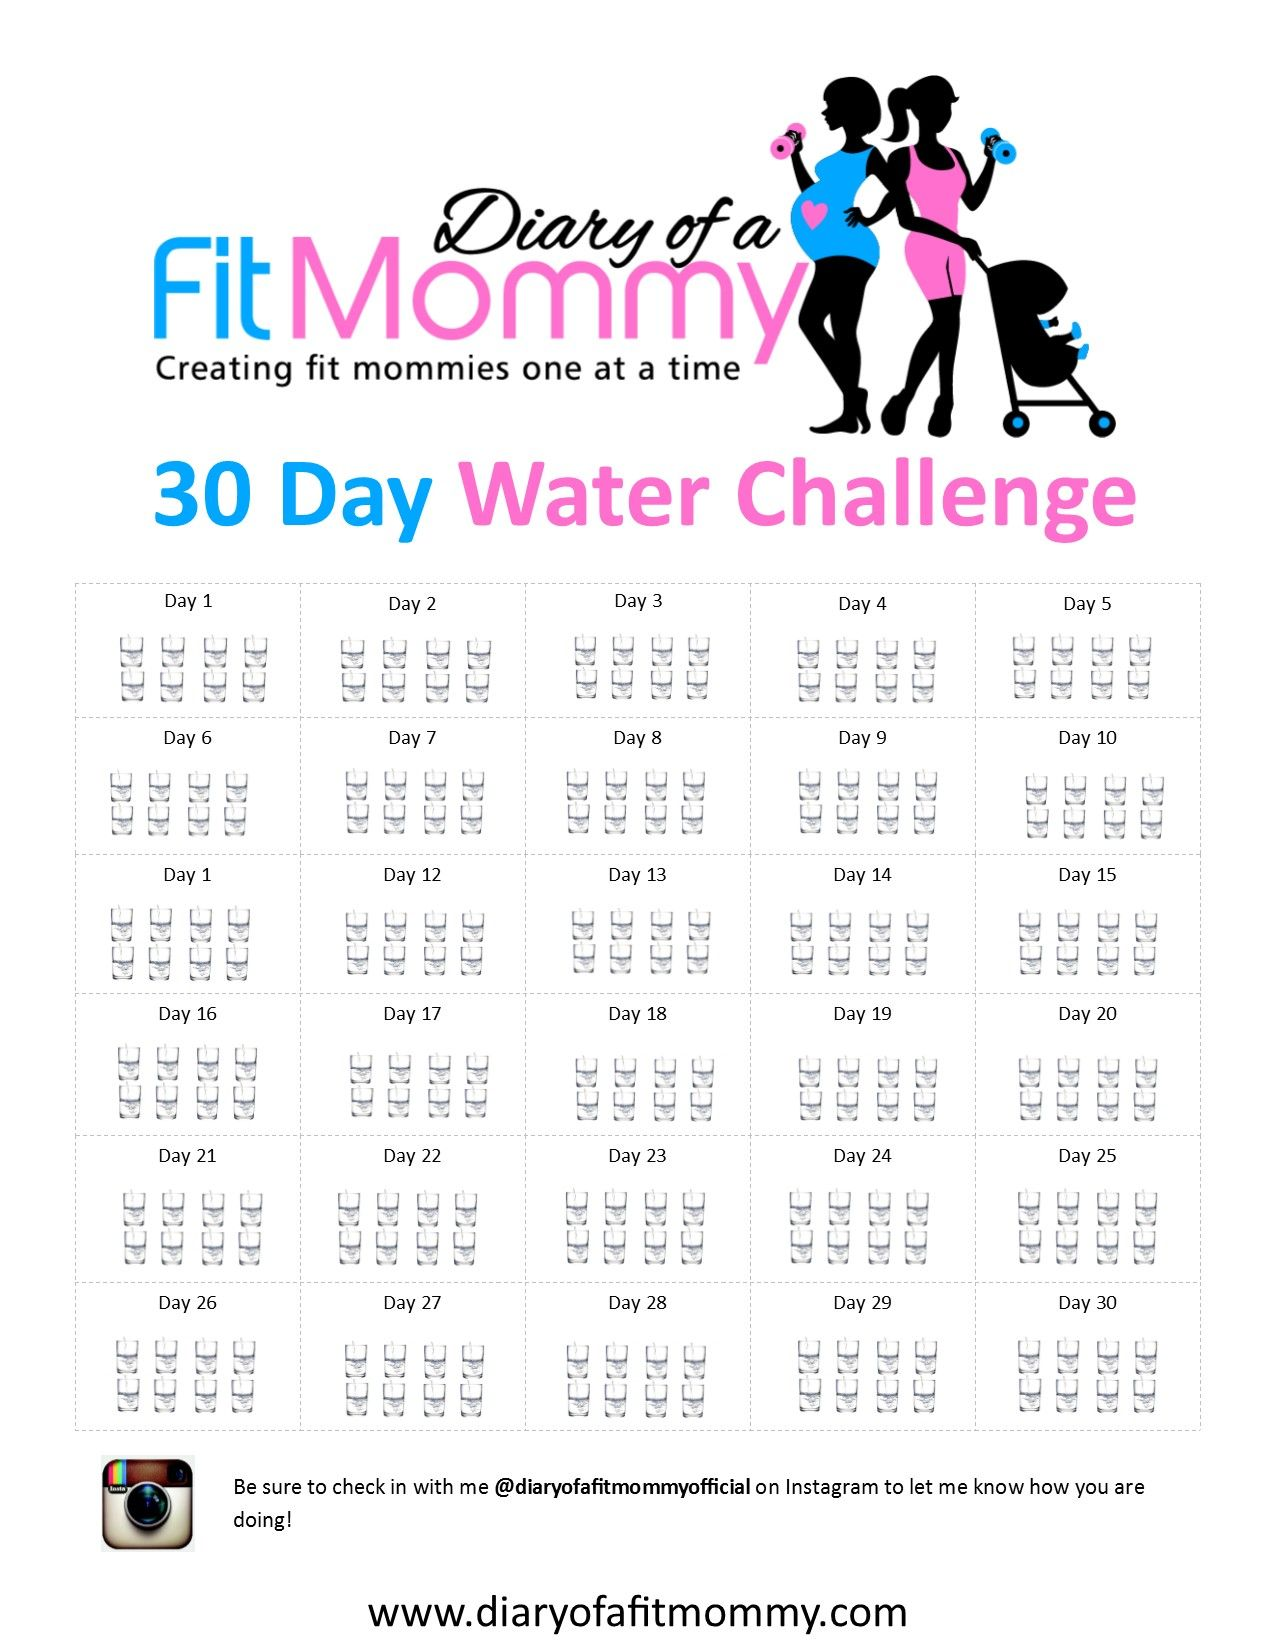 Watch How to Host a Weight Loss Contest video